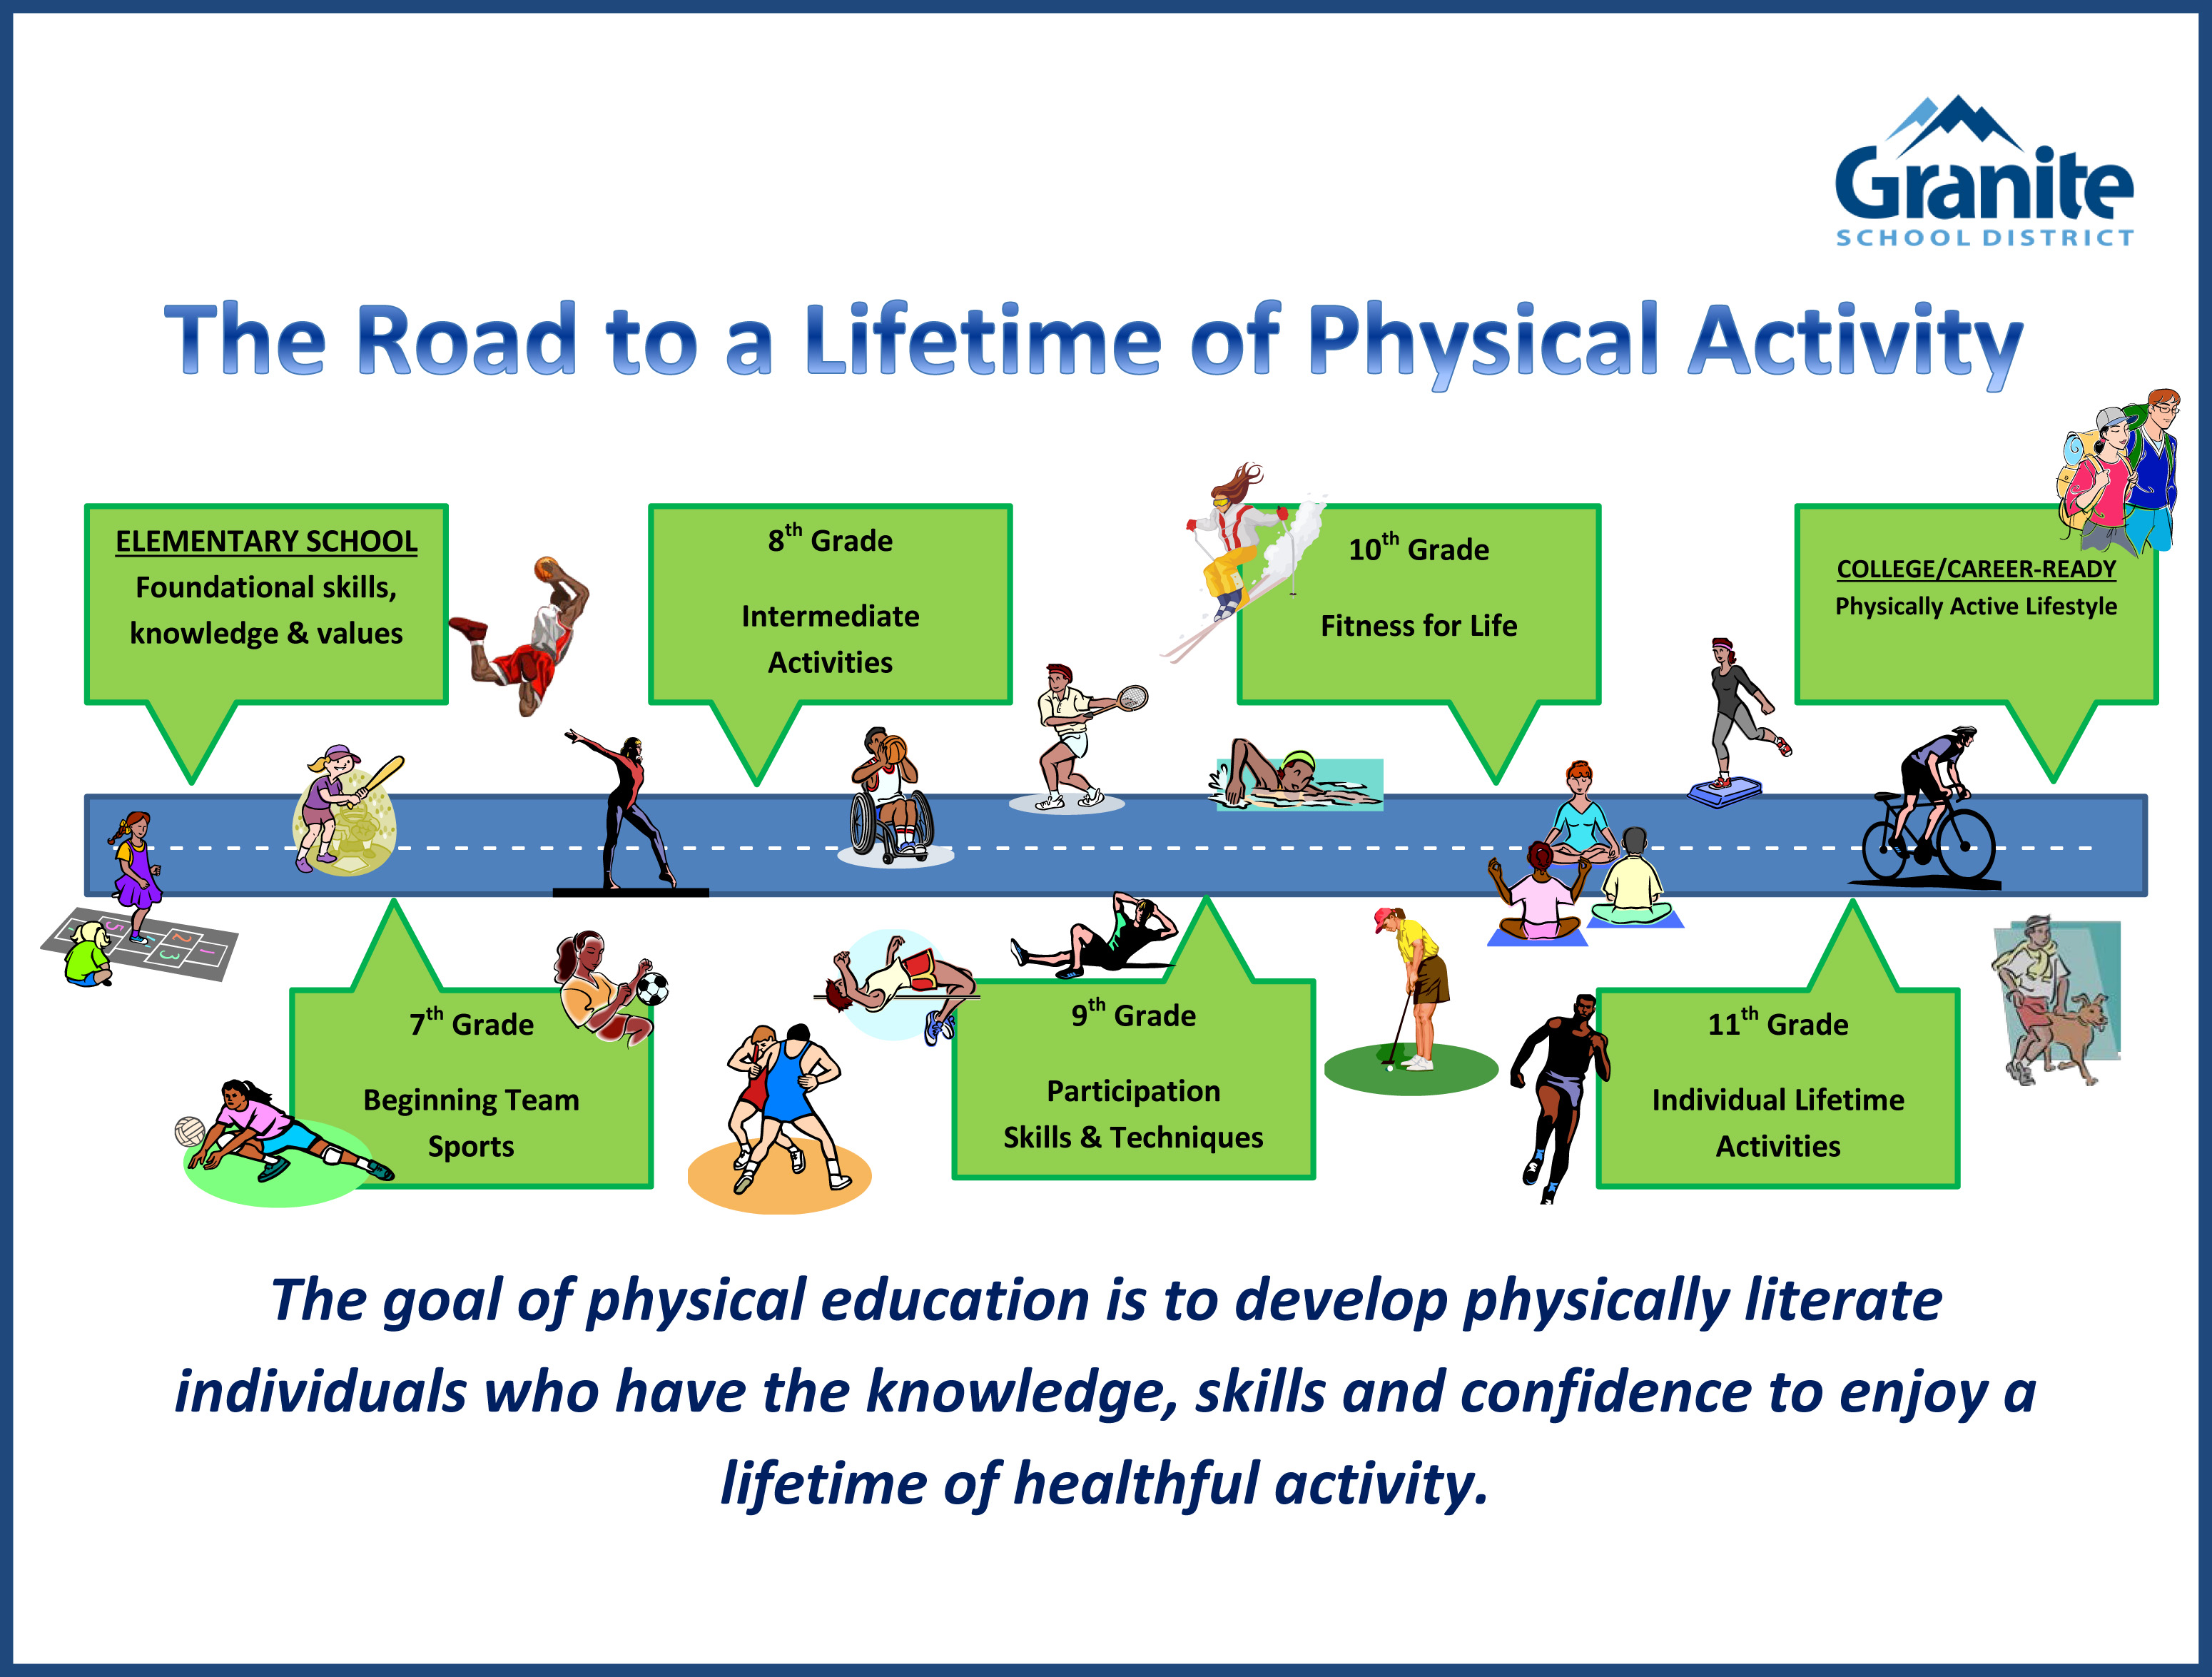 physical education important in schools • els of physical competency • es schools to offer their ed in els t y schools: • t vision of 50 per cent for physical education y schools: • 00 t school t e en the best possible health, elopment and learning foundations will benefit ell as our community  4 school why have t.